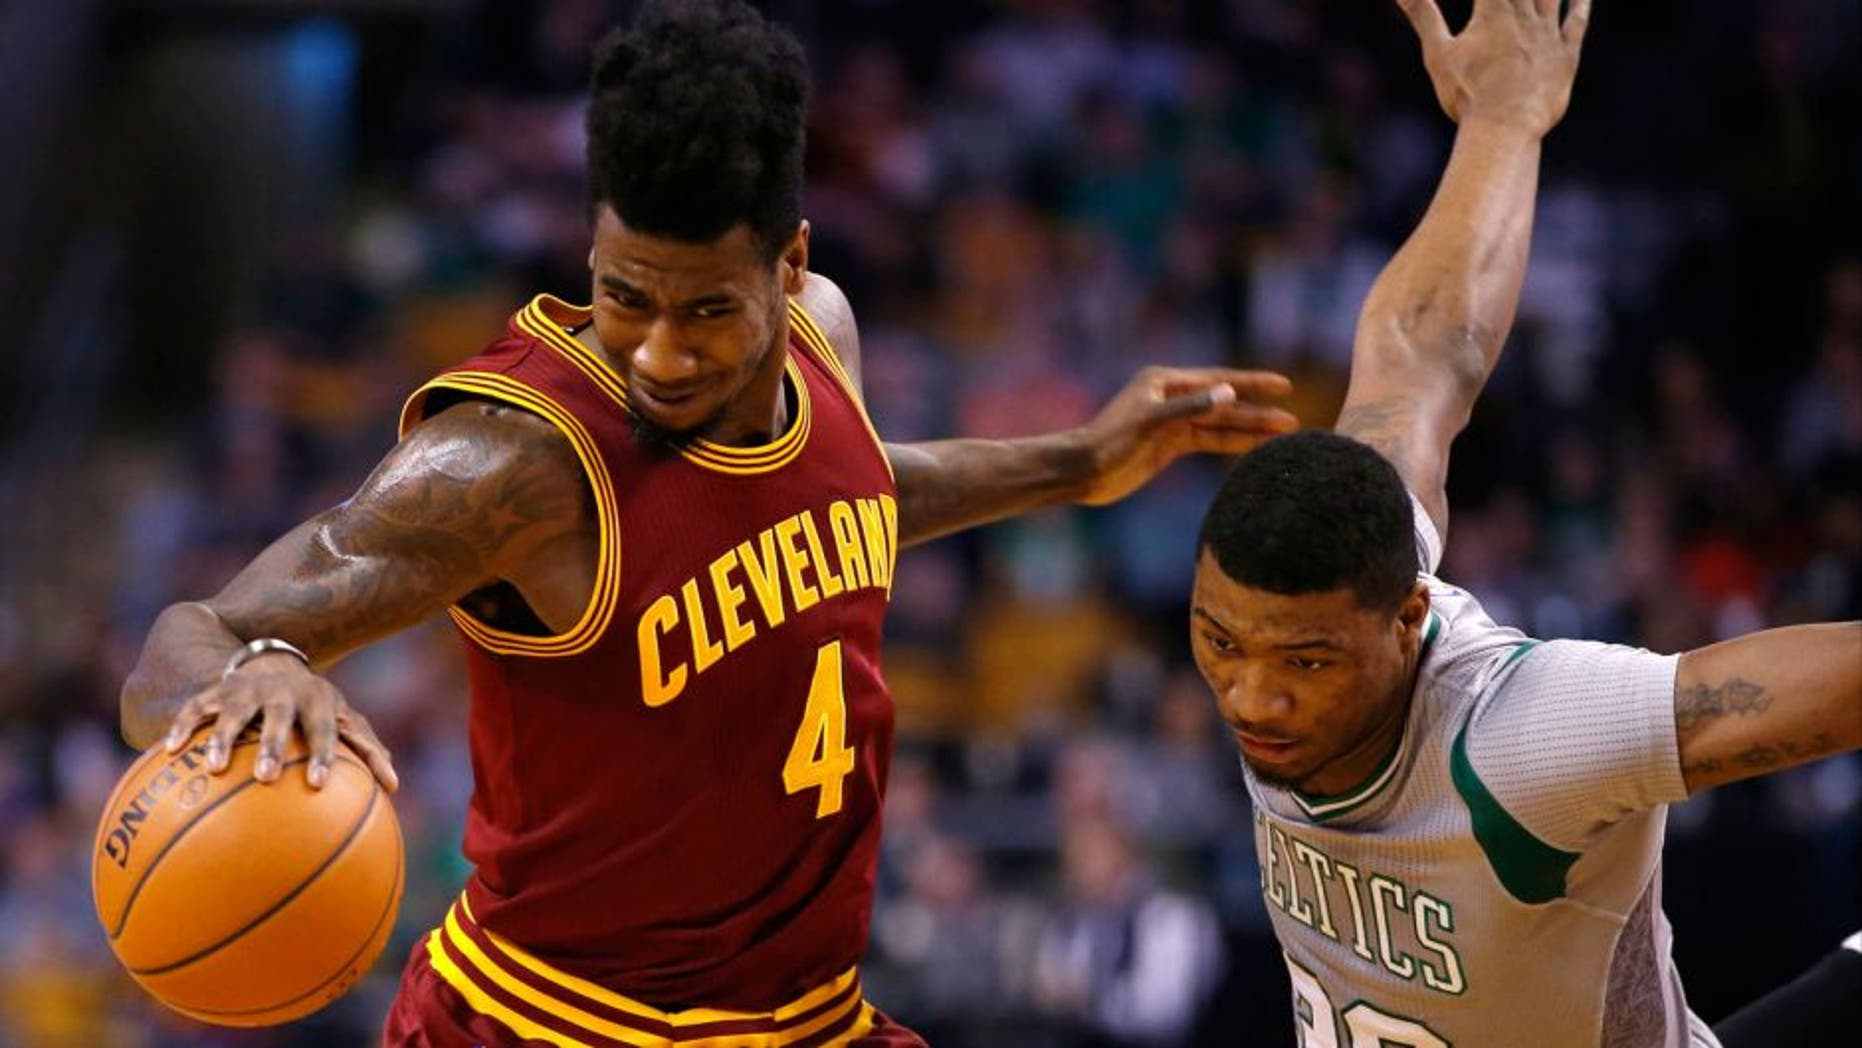 Apr 12, 2015; Boston, MA, USA; Cleveland Cavaliers guard Iman Shumpert (4) works the ball against Boston Celtics guard Marcus Smart (36) in the first half at TD Garden. The Celtics defeated the Cleveland Cavaliers 117-78. Mandatory Credit: David Butler II-USA TODAY Sports